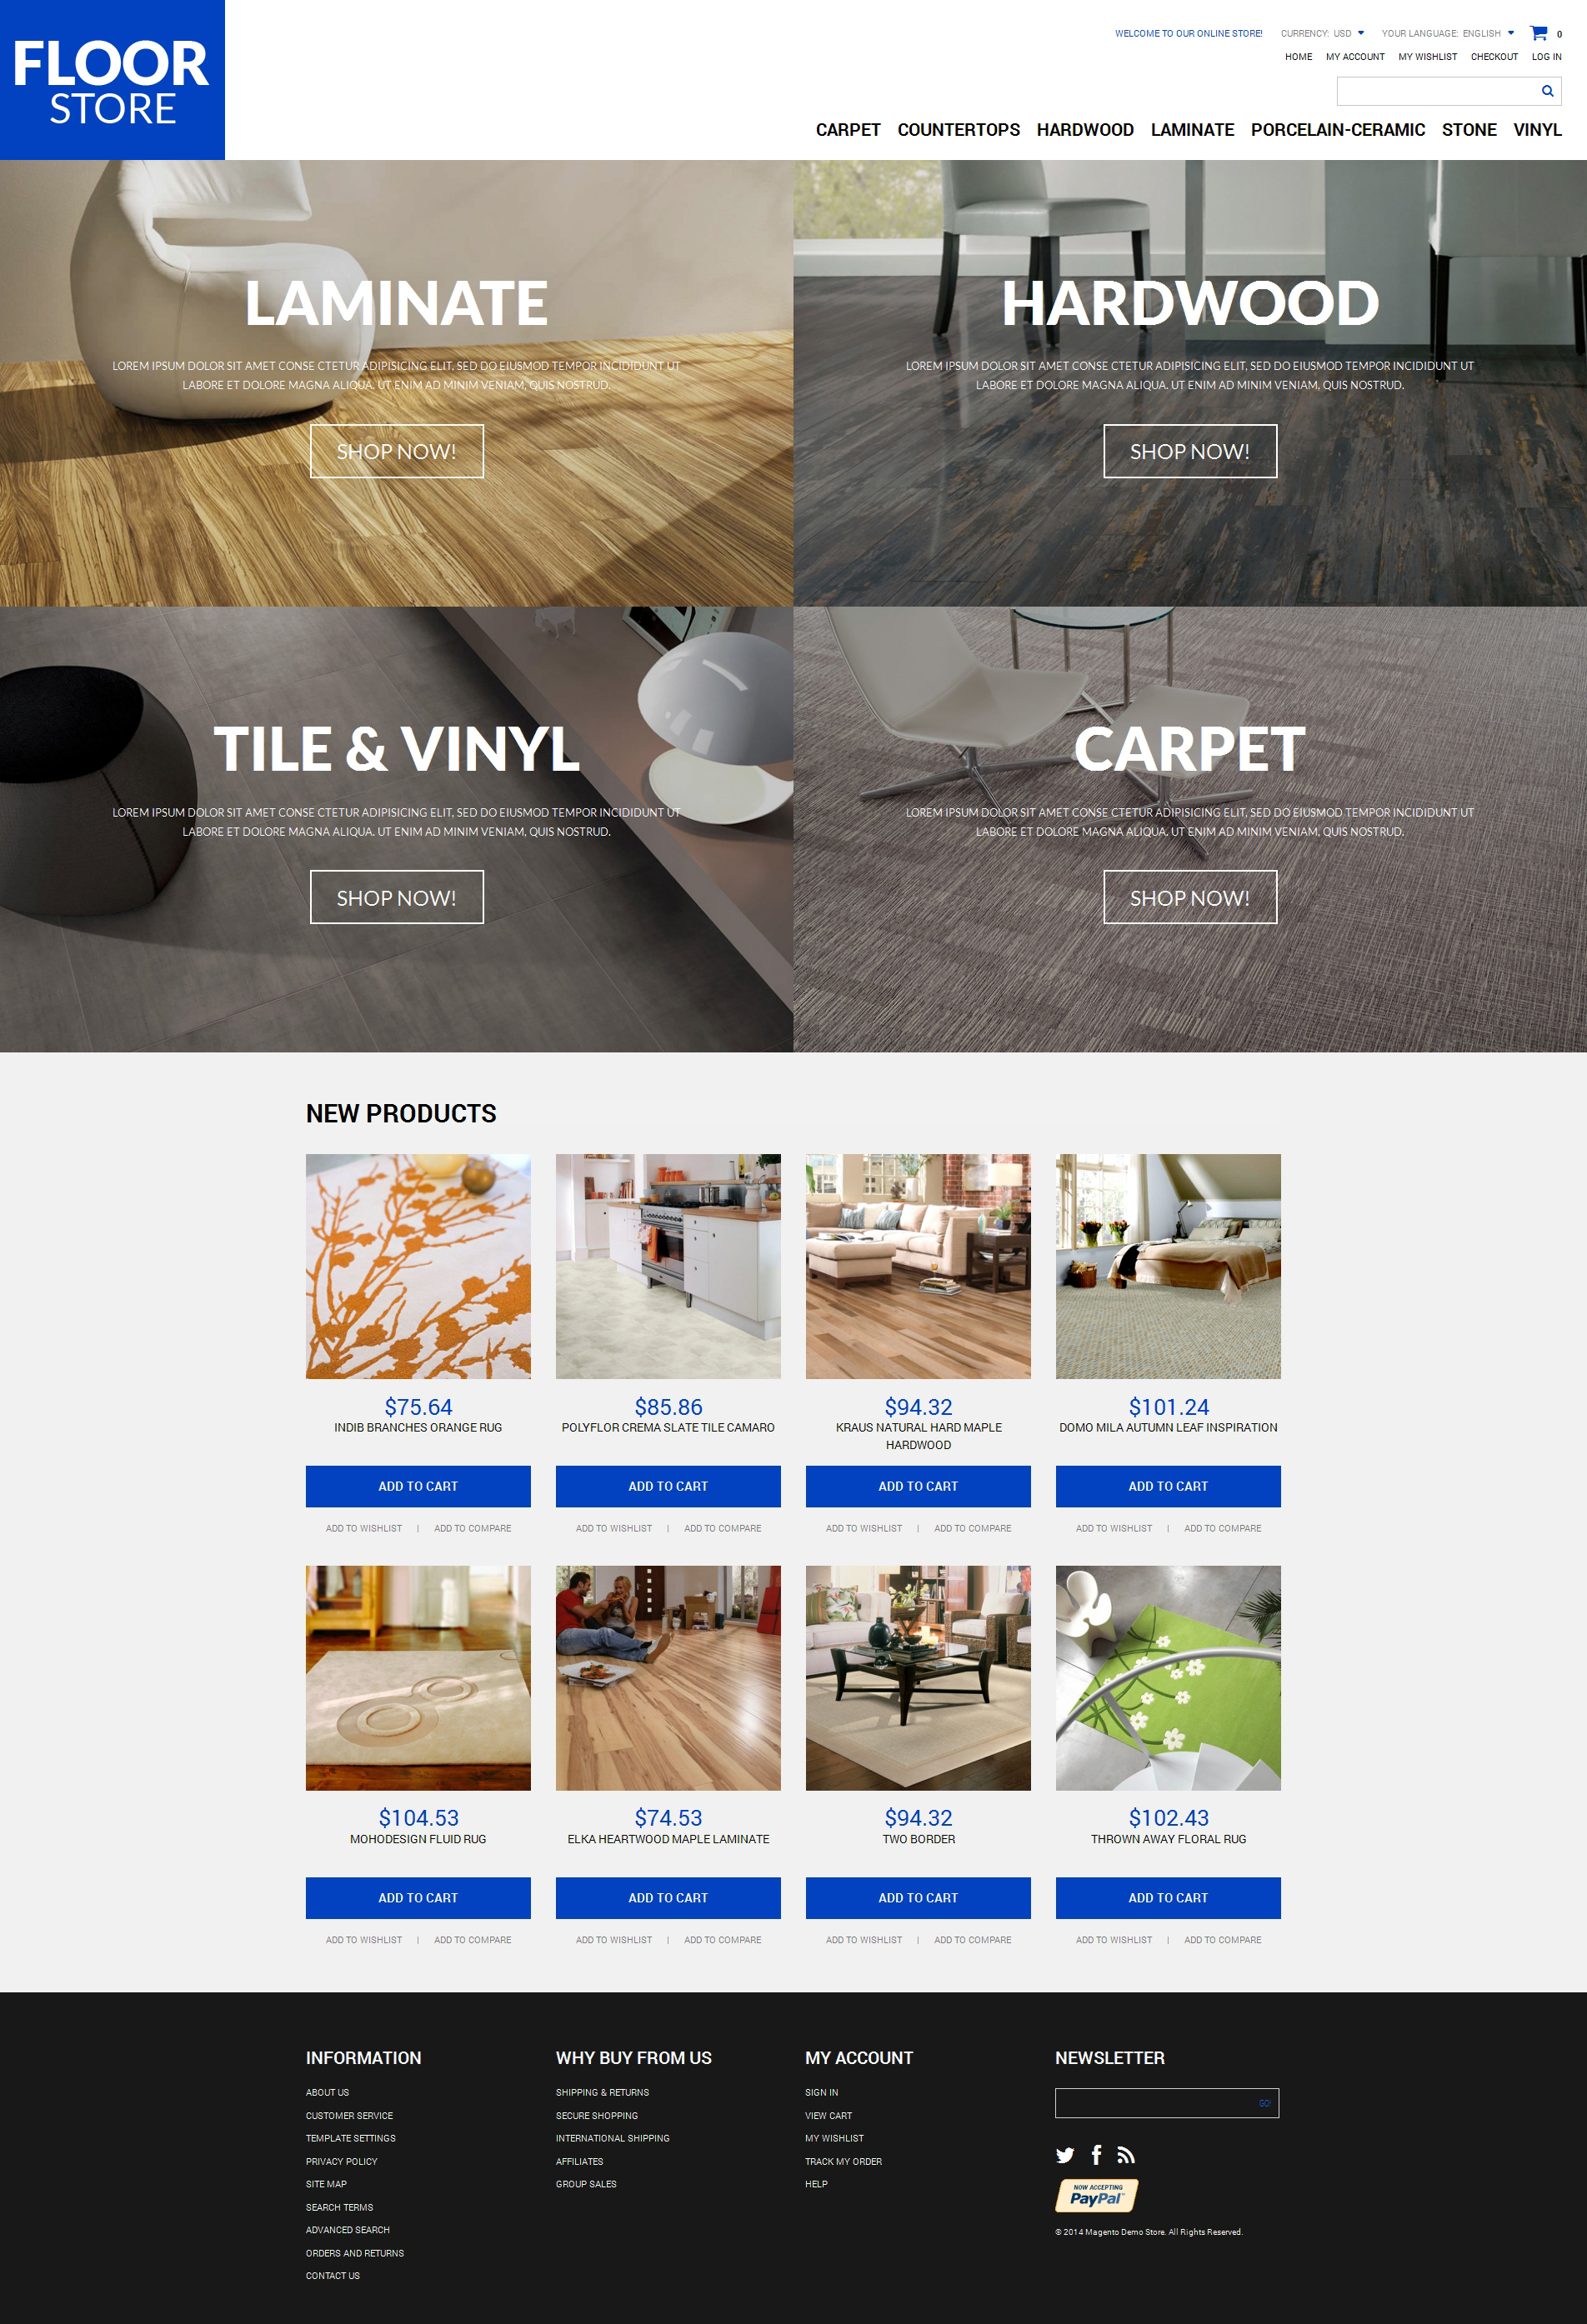 Google chrome themes zoomed in